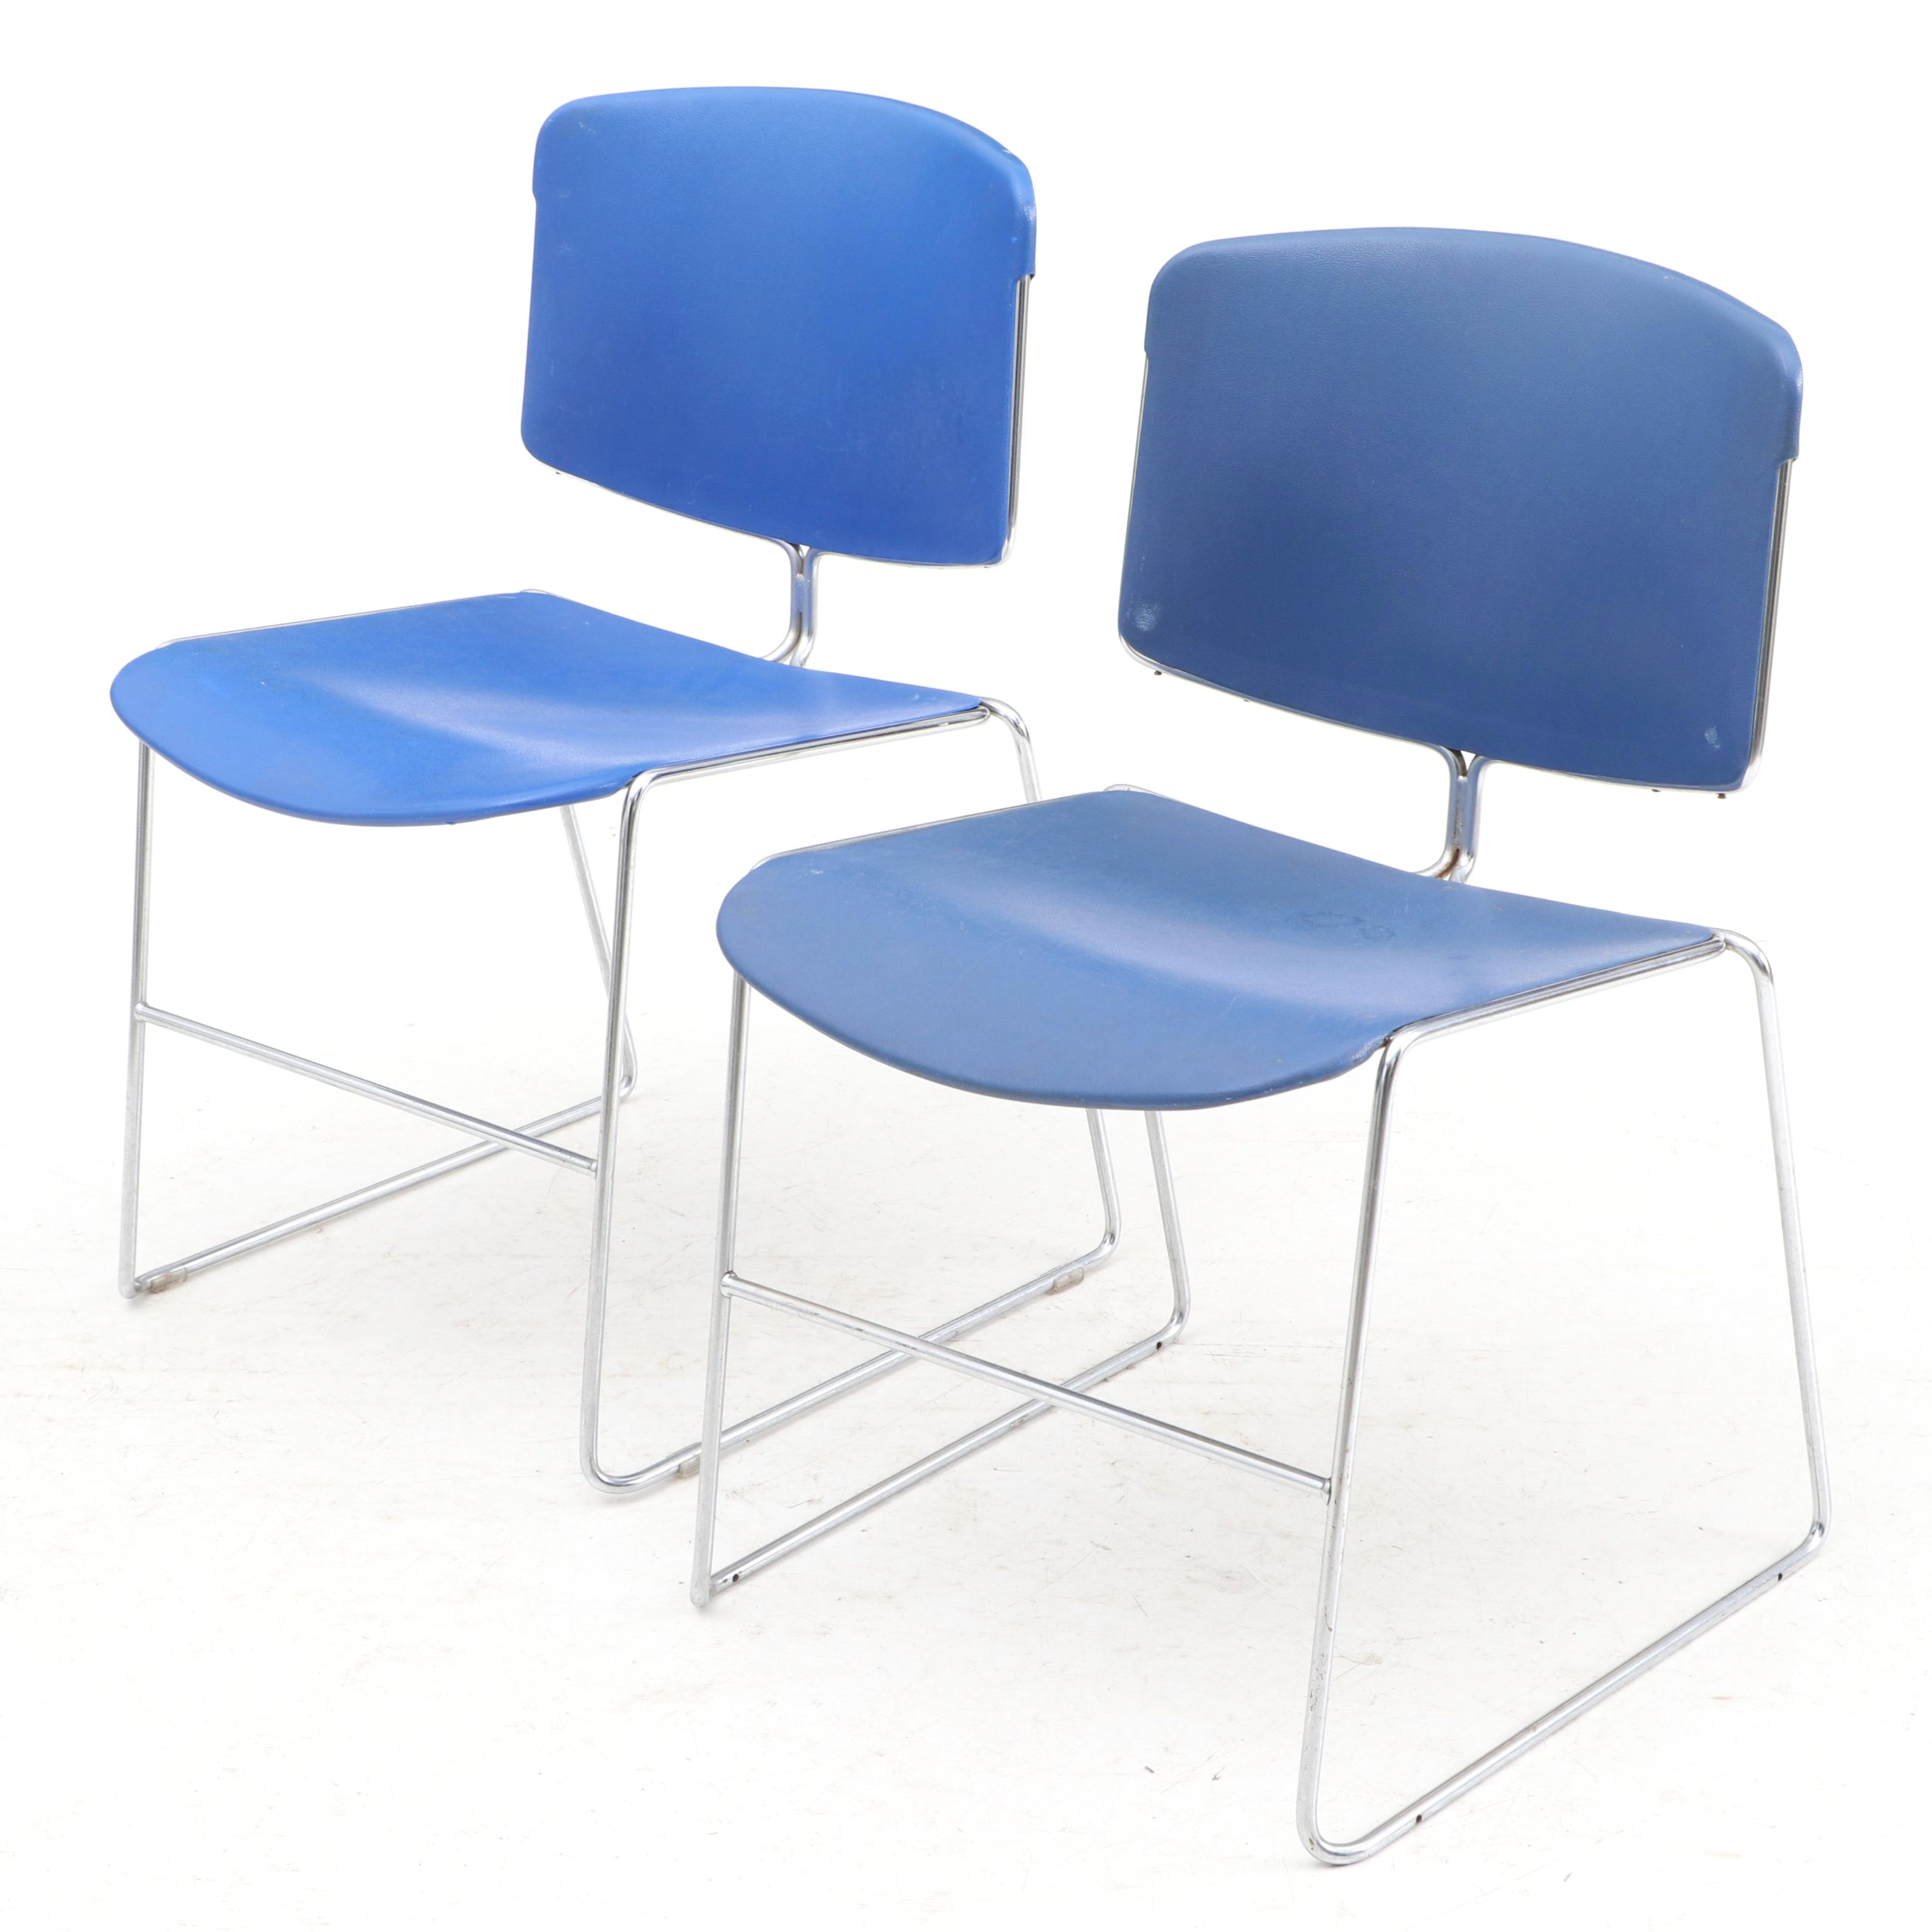 Chrome and Molded Plastic Side Chairs by Steelcase